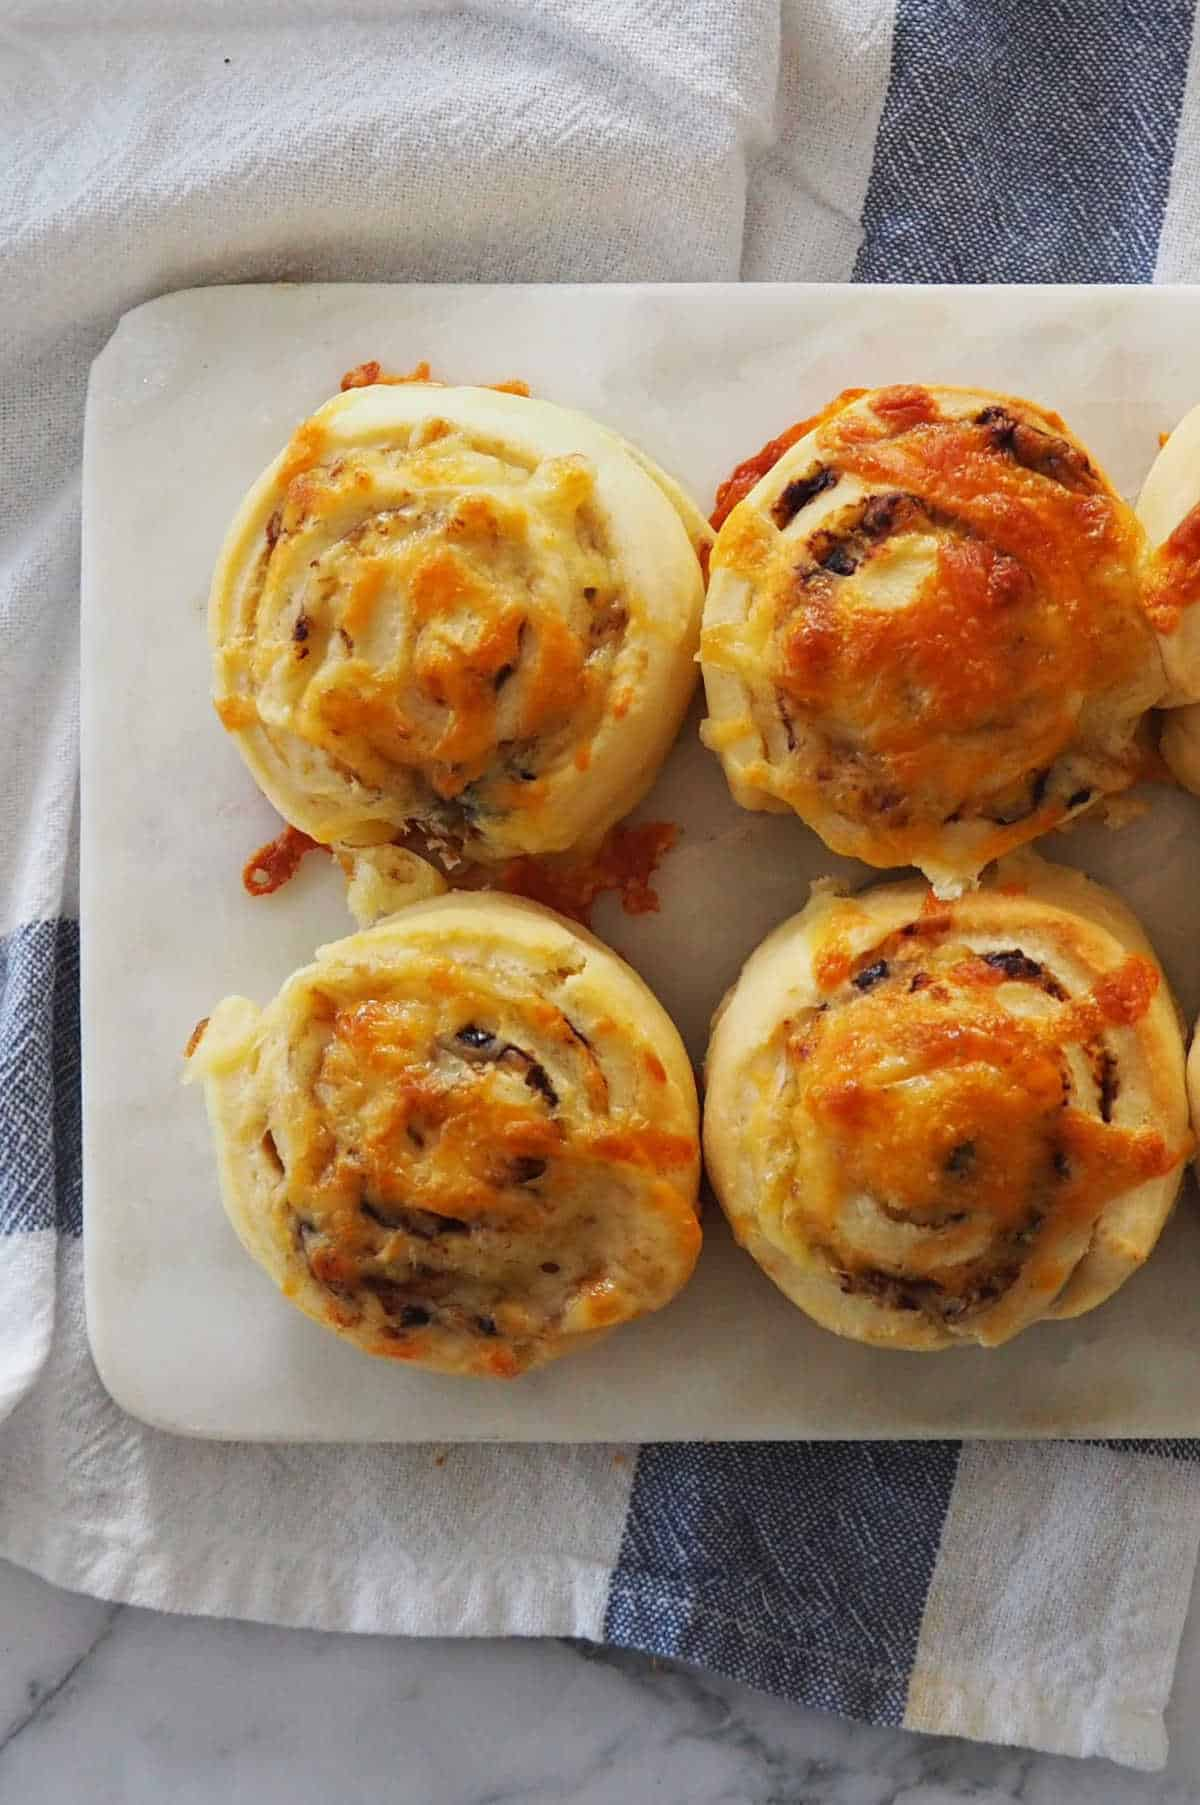 vegemite and cheese scrolls on platter